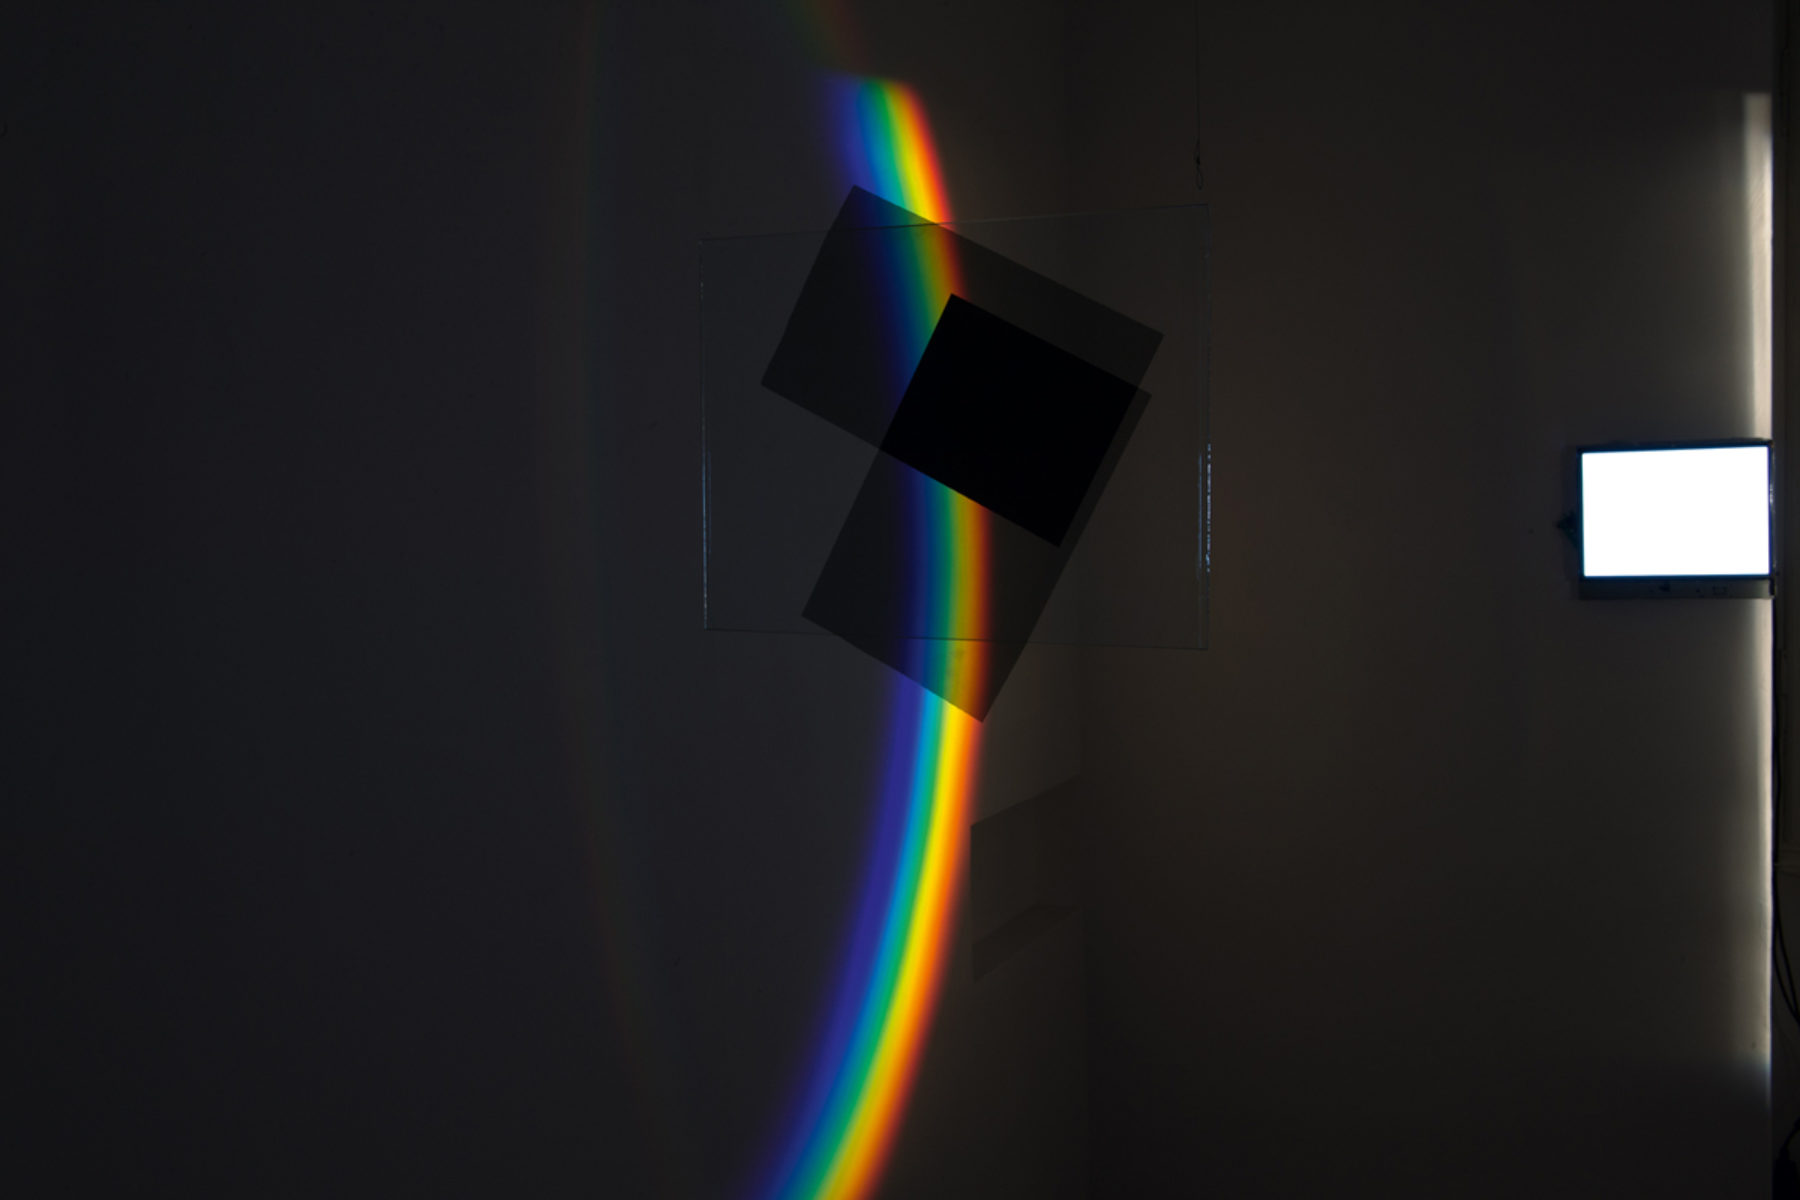 Richard Loskot, Color System, 2012, light, lcd monitor, cristal prisma, computer, polarized films, installation, f